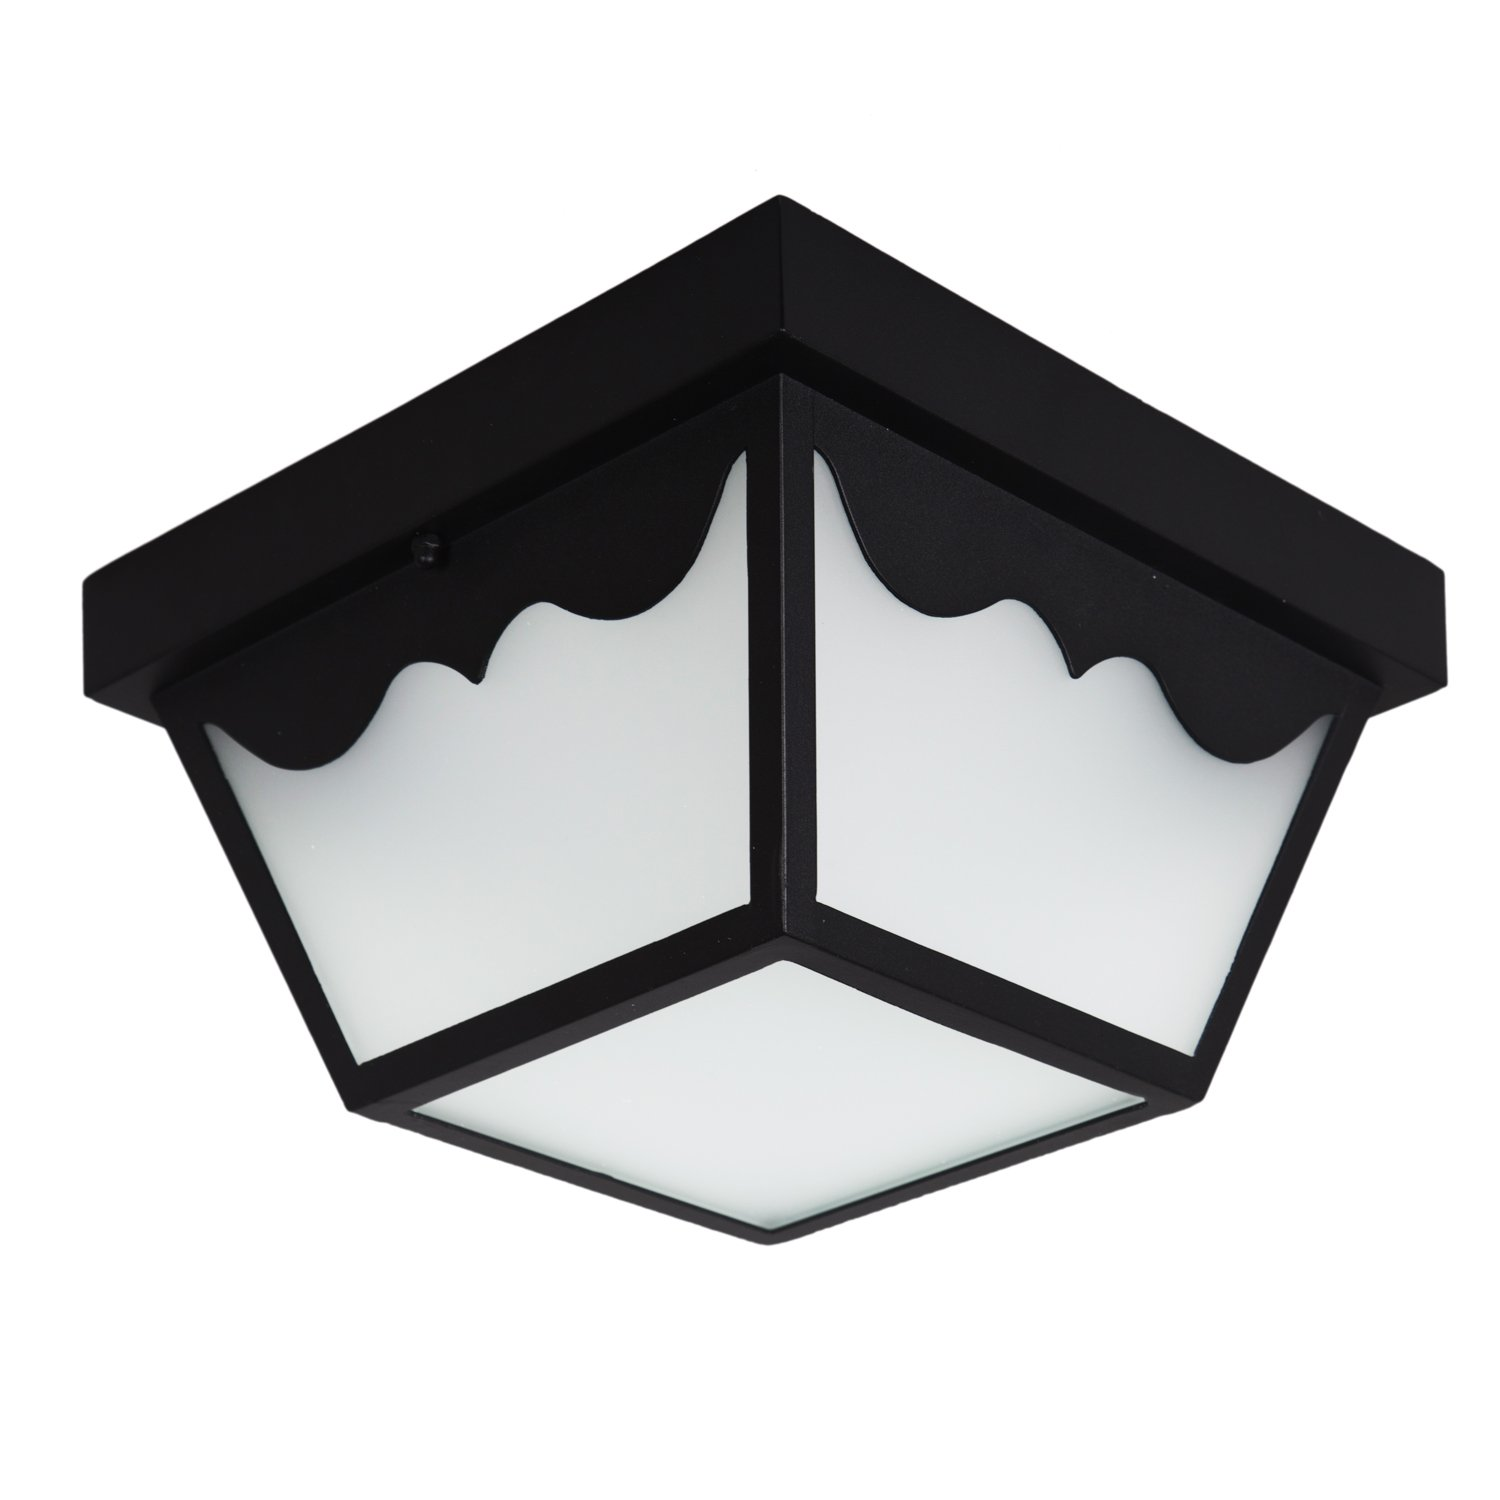 Maxxima LED Outdoor Porch Ceiling Light Fixture, Black w/Frosted Glass, 700 Lumens, 4000K Neutral White